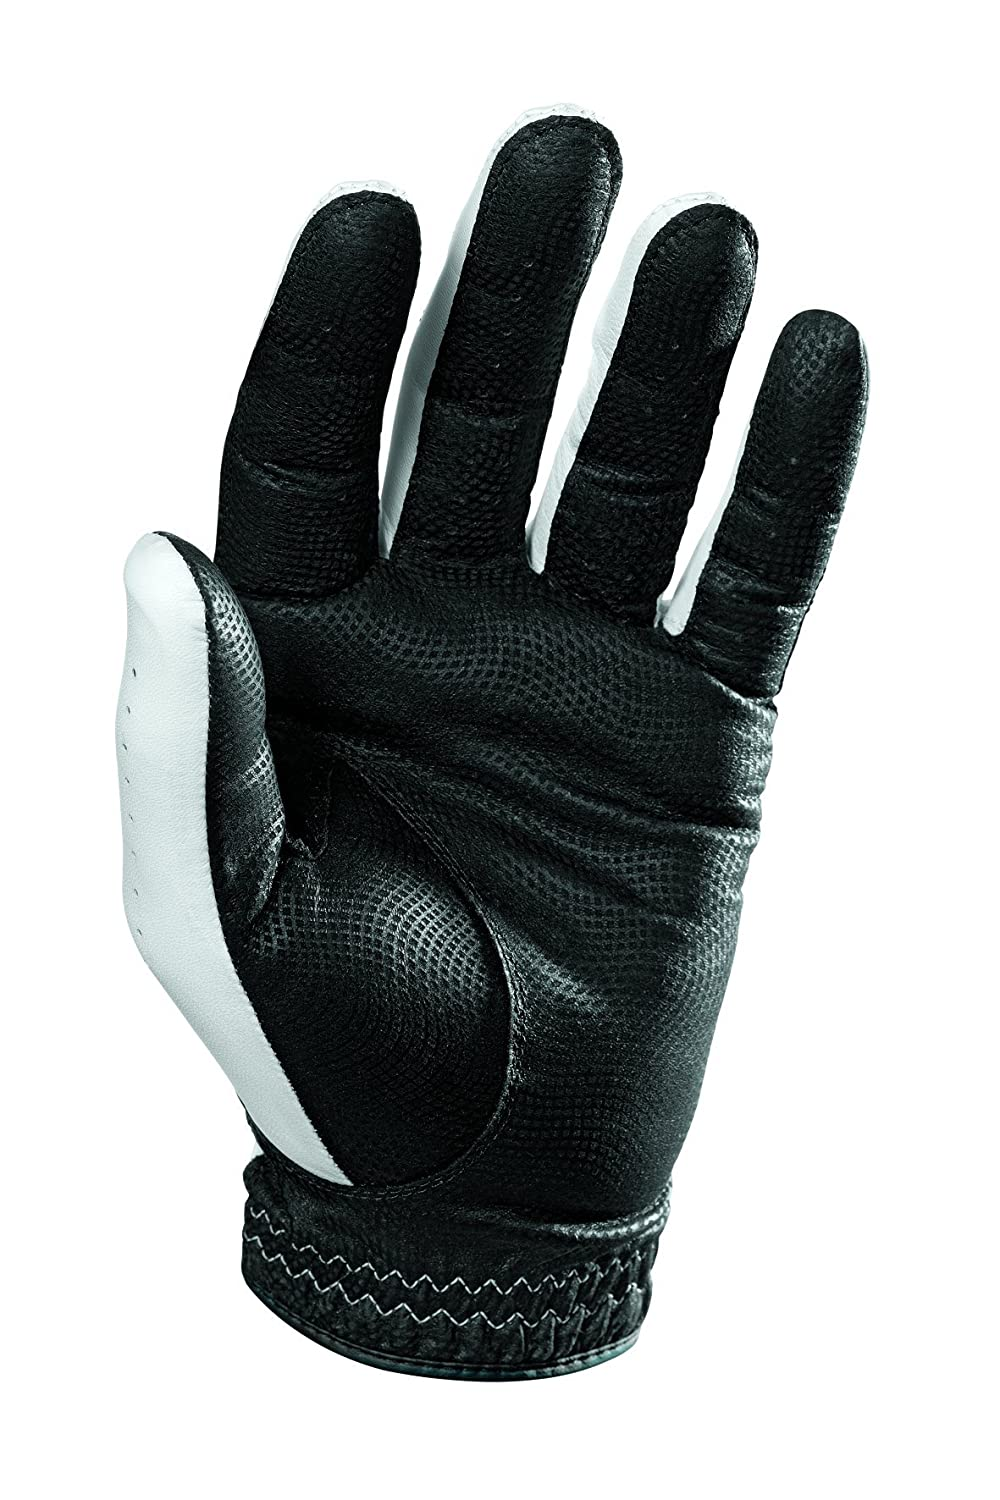 Hirzl Men s Trust Control Textured Palm Kangaroo Leather Golf Glove